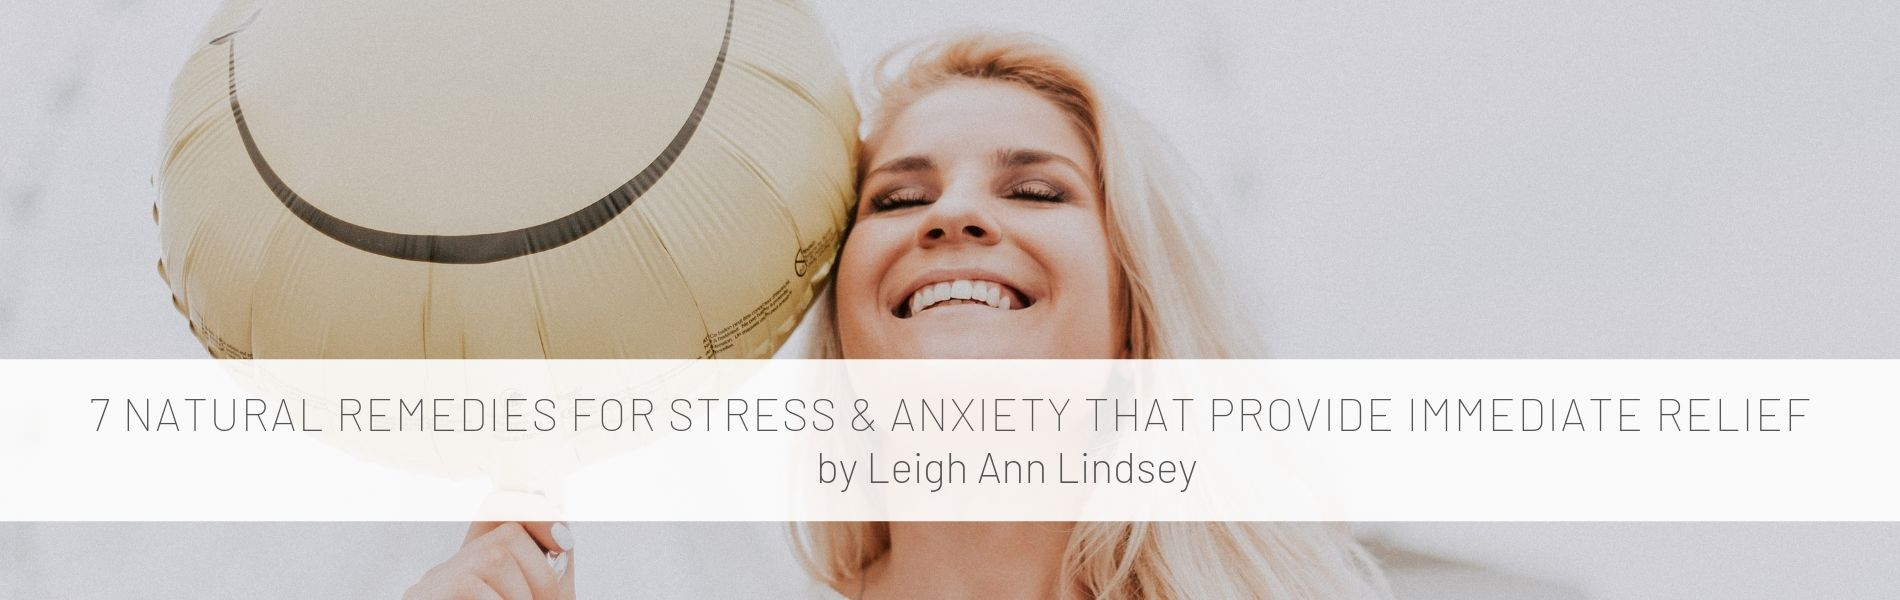 7 Natural Remedies for Stress & Anxiety That Provide Immediate Relief by Leigh Ann Lindsey